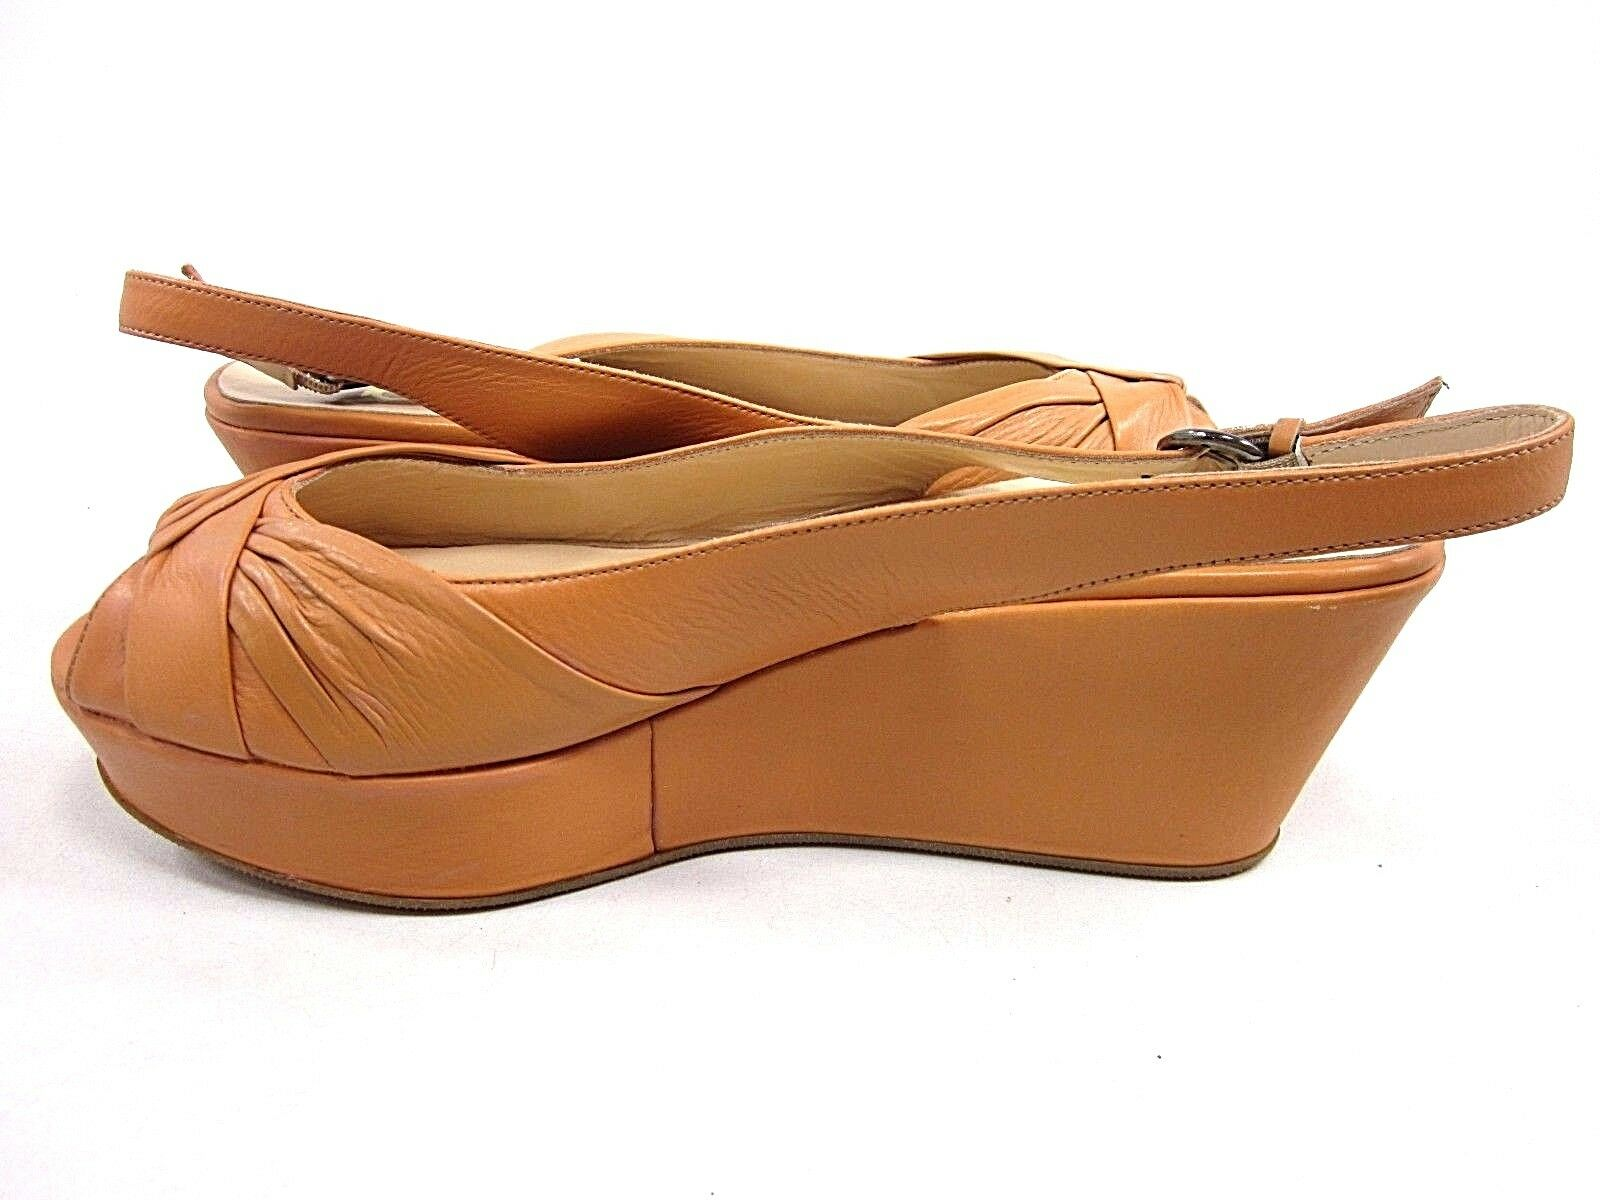 BUTTER, BUTTER, BUTTER, SOUP PLATFORM SANDAL, donna, NATURAL, US Dimensione 10 M, NEW WITH BOX 37b8f1